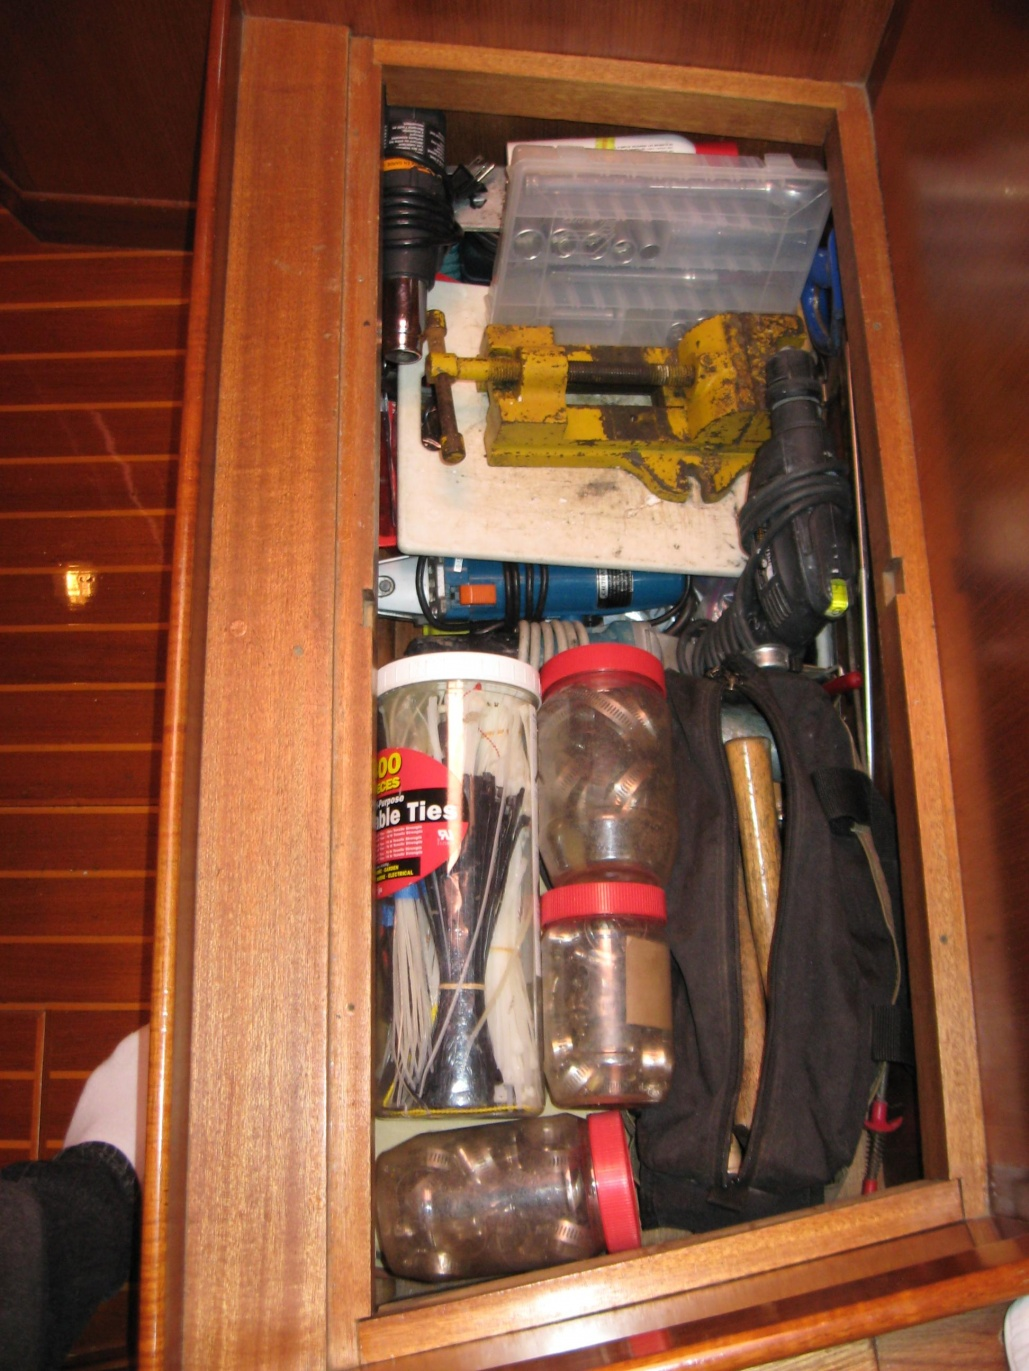 Click image for larger version  Name:Tool Storage.jpg Views:216 Size:426.3 KB ID:19352